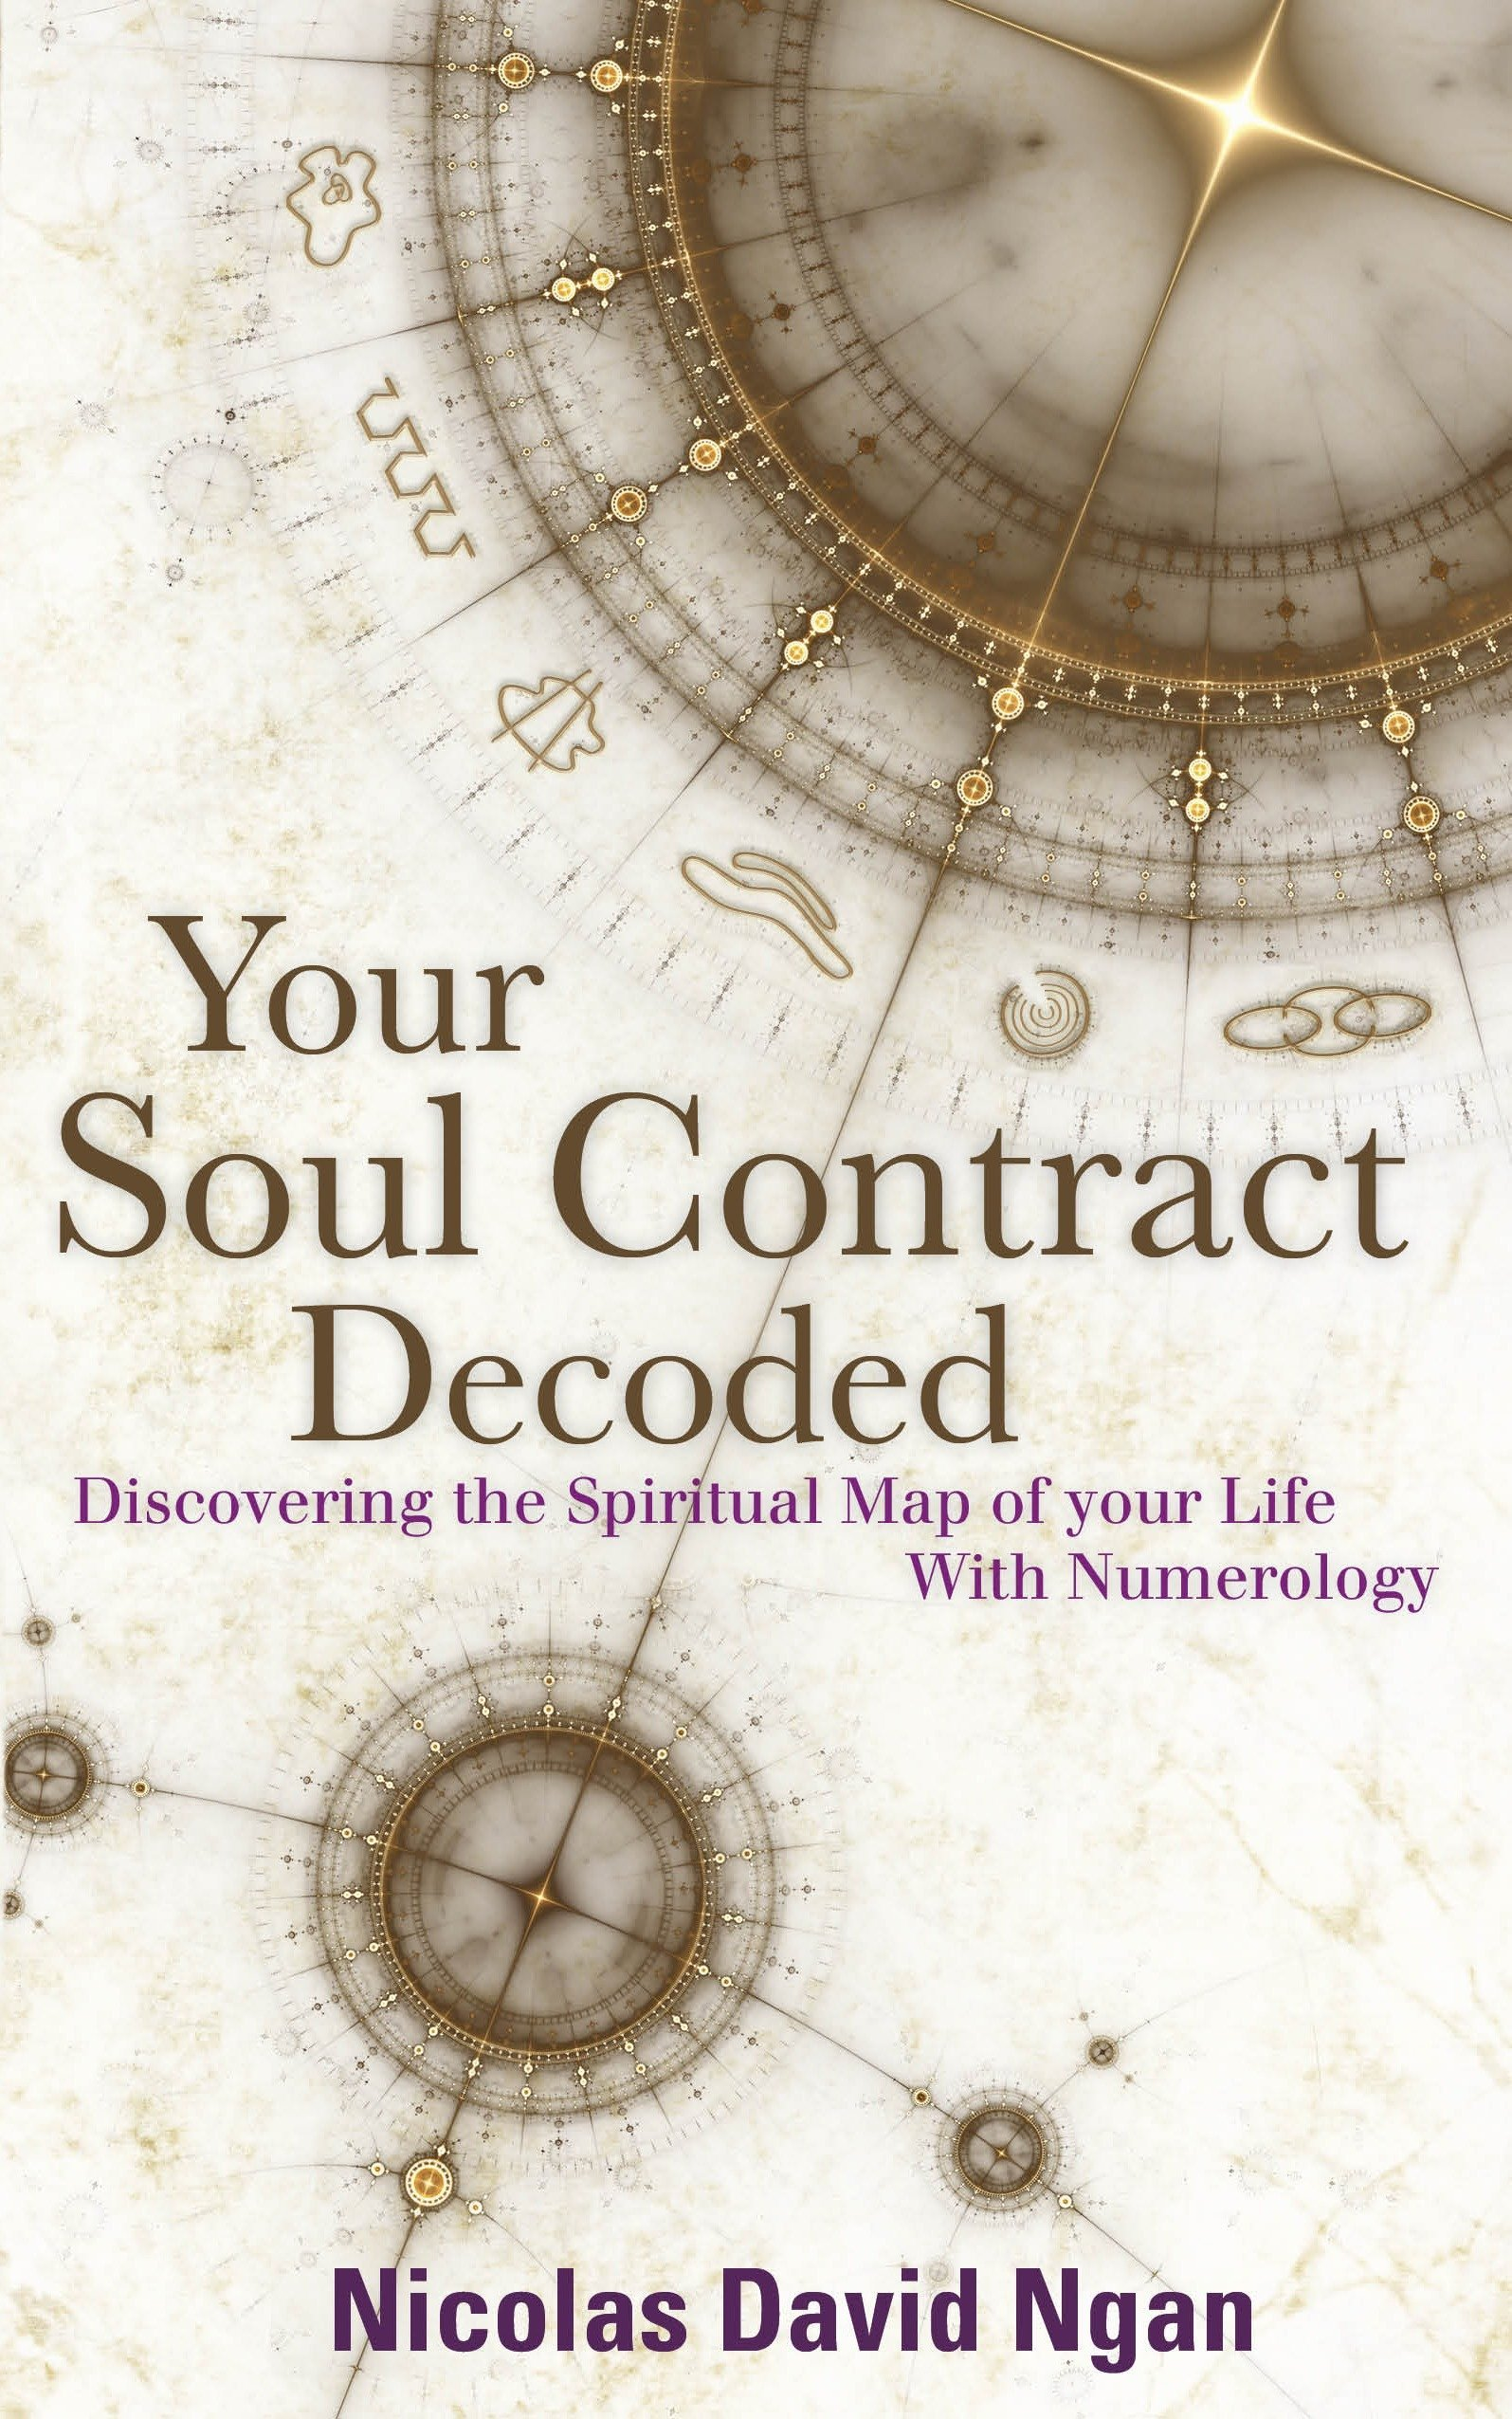 Your soul contract decoded discovering the spiritual map of your your soul contract decoded discovering the spiritual map of your life with numerology nicolas david ngan 9781780285320 amazon books malvernweather Image collections